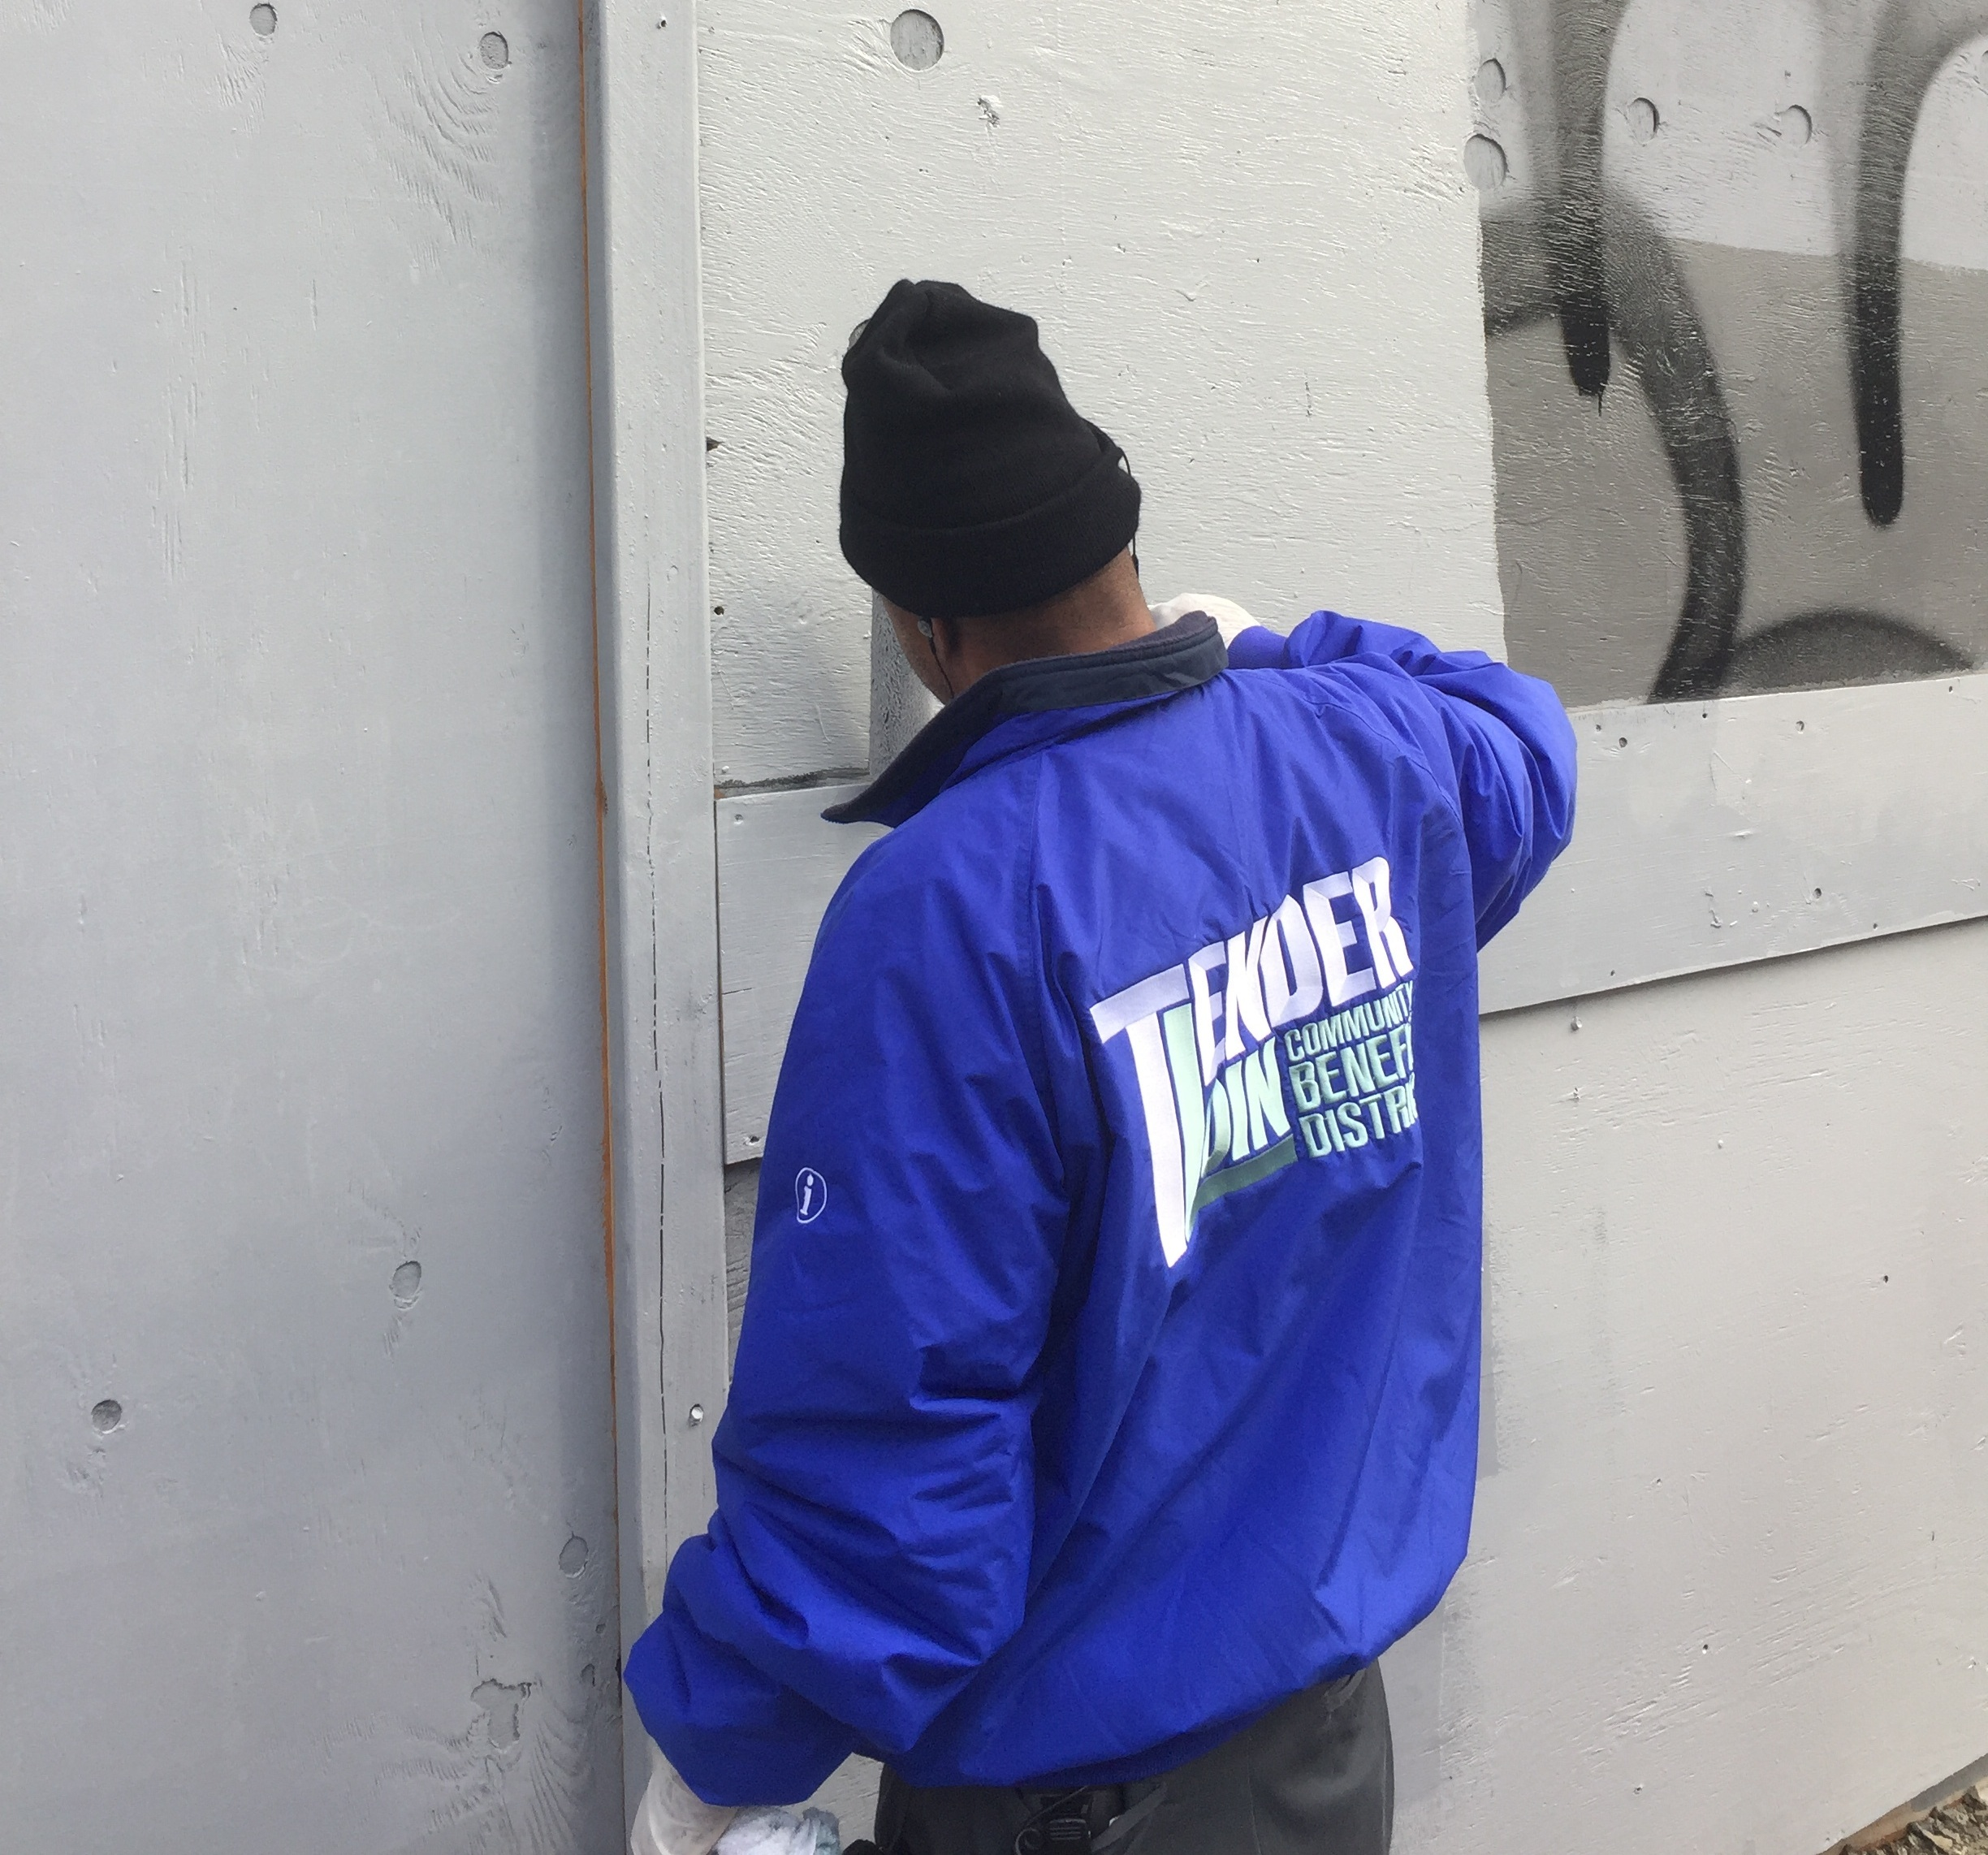 Have you seen these jackets out and about? Say hello to our Clean Team members!